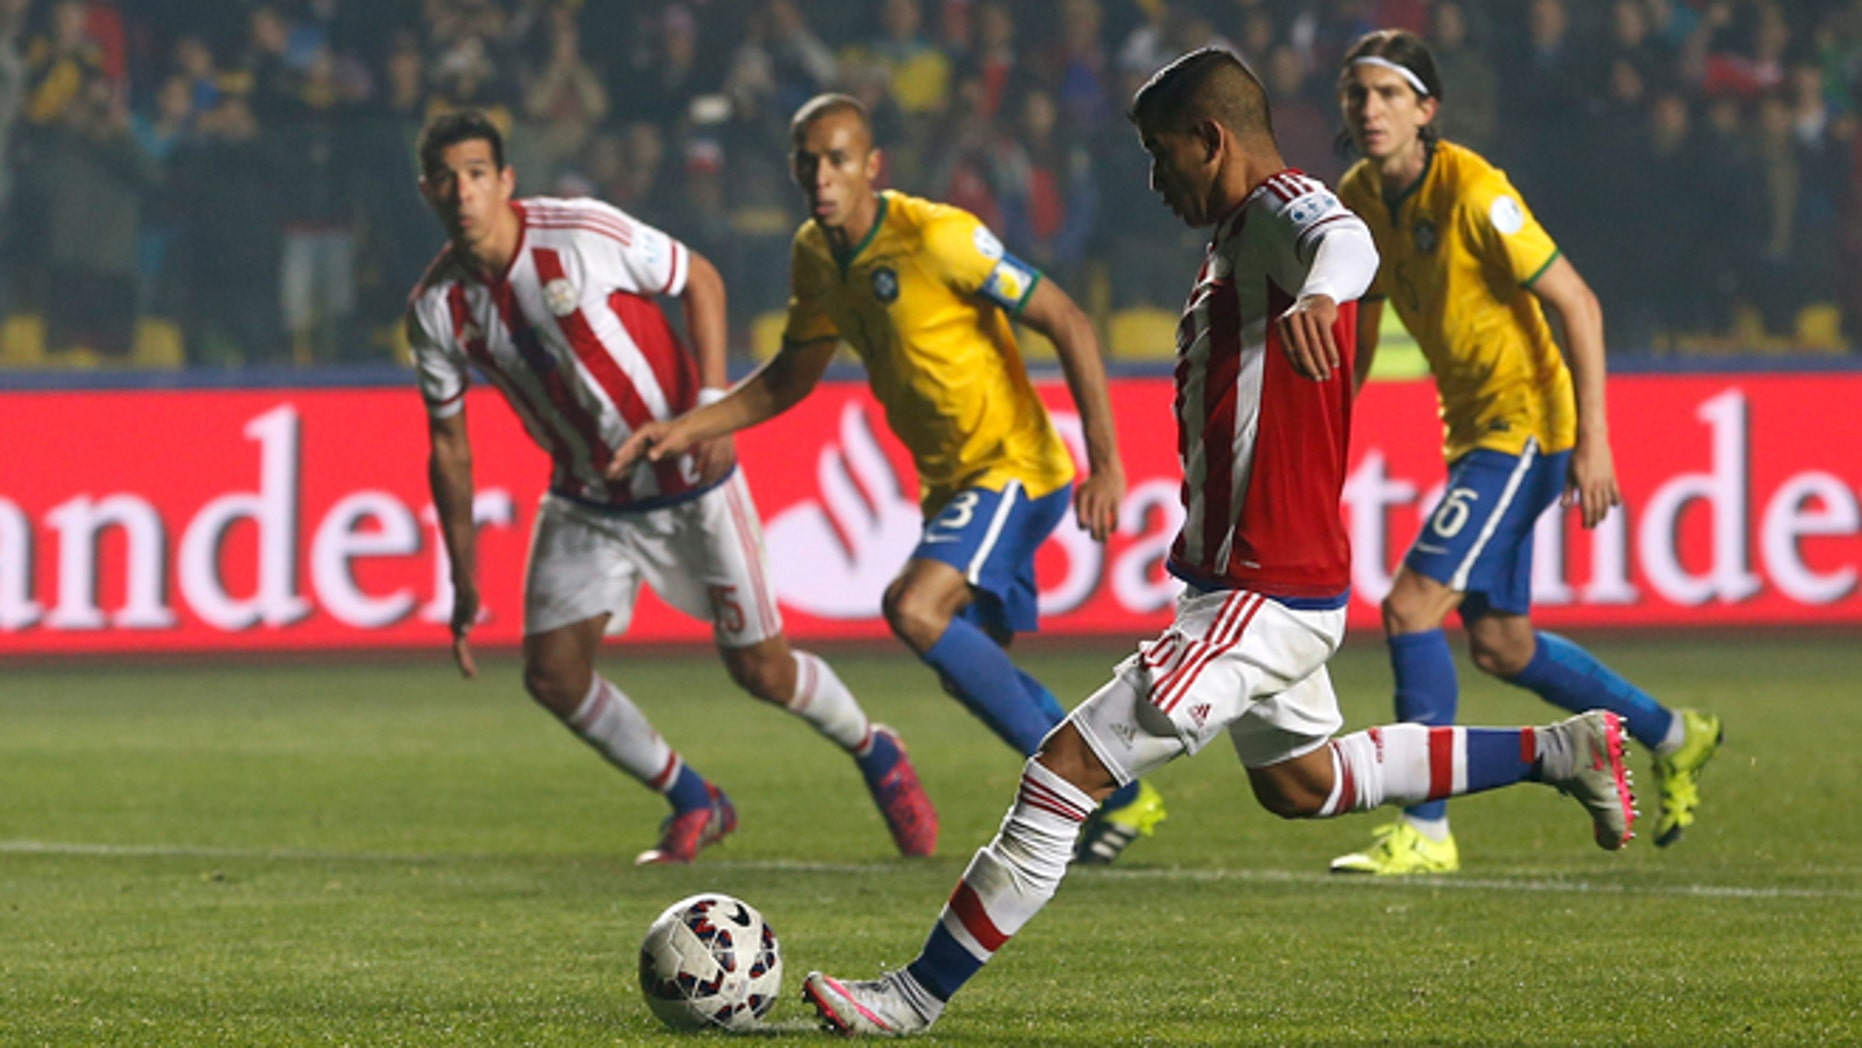 Paraguay's Derlis Gonzélez shoots from the penalty spot to scorer his sides first goal during a Copa America quarterfinal soccer match against Brazil at the Ester Roa Rebolledo Stadium in Concepción, Chile, Saturday, June 27, 2015. (AP Photo/Silvia Izquierdo)